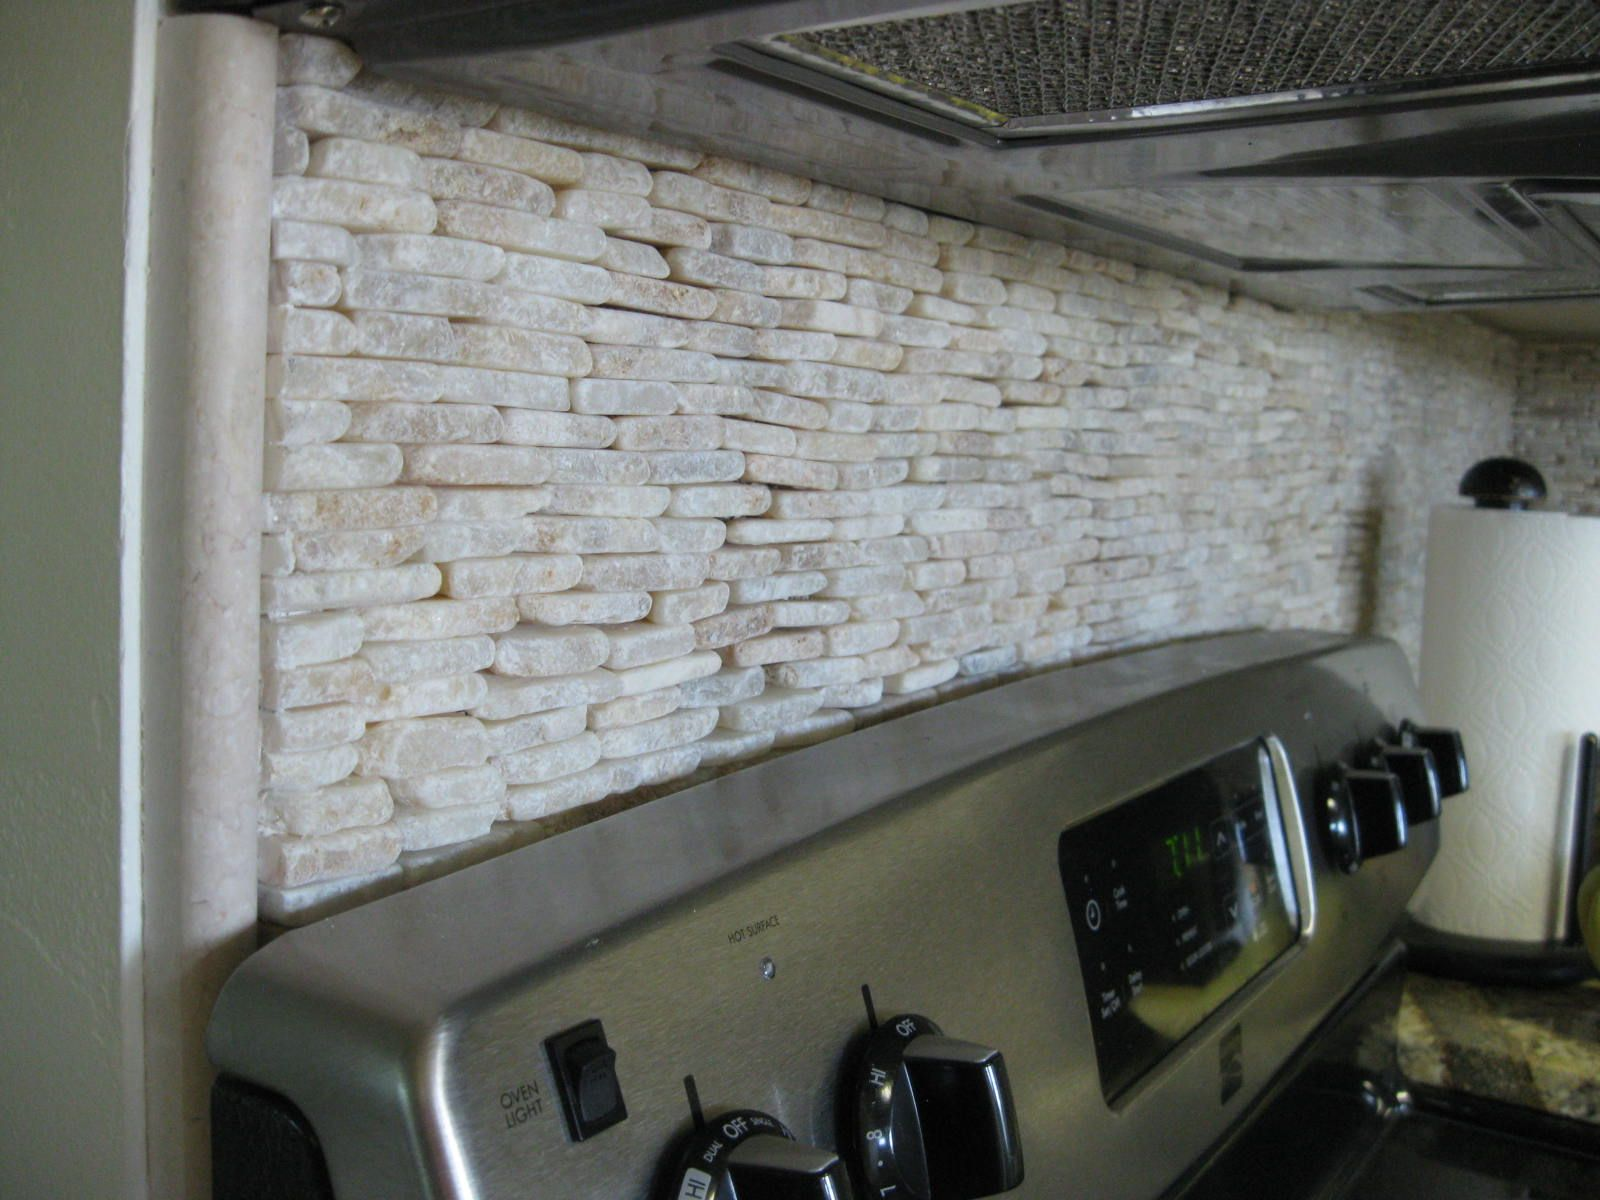 Unique exposed white bricks back splash as well as brick unique exposed white bricks back splash as well as brick limitlessdesign dailygadgetfo Image collections